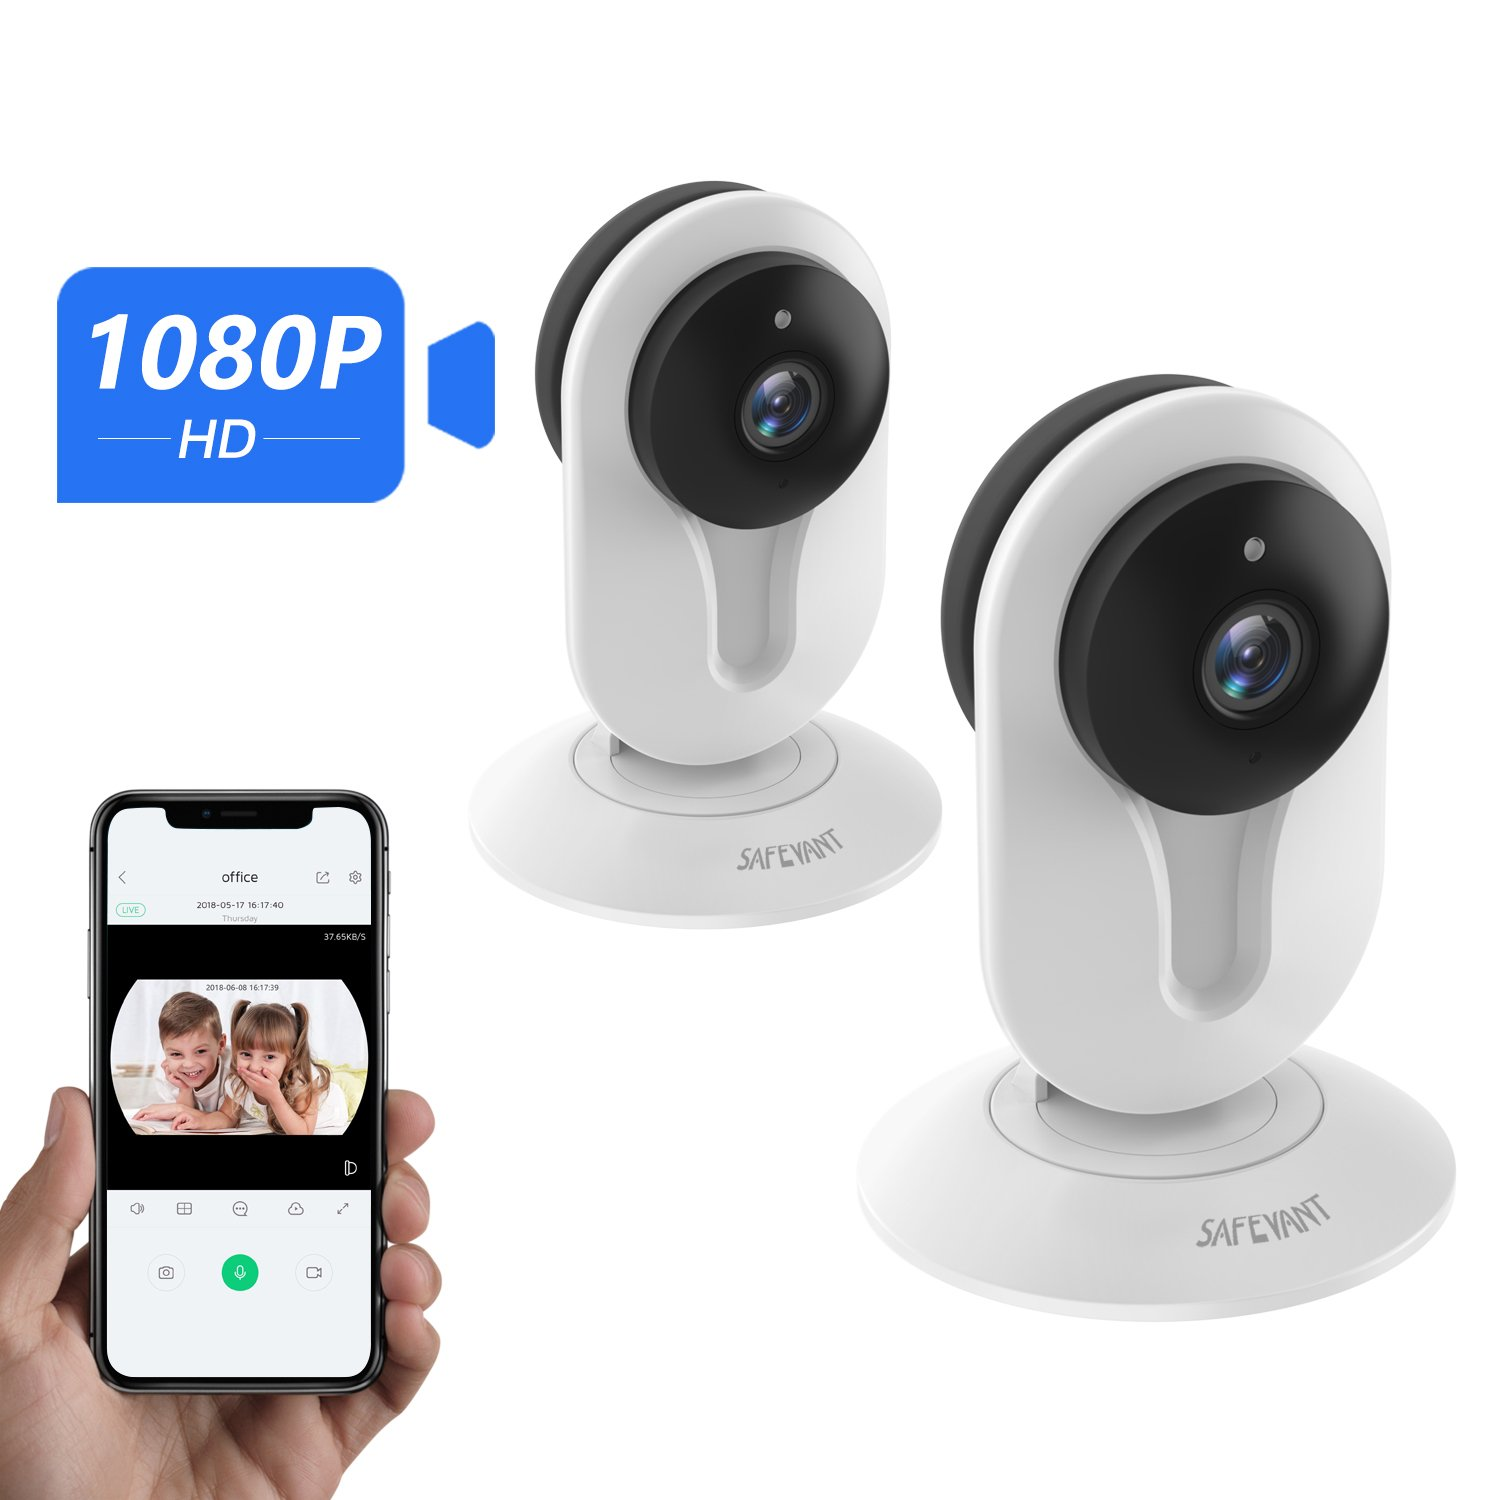 1080P Security Camera,Safevant Indoor Wireless IP Camera Security Surveillance System with Night Vision for Home/Office/Baby/Pet Monitor with iOS, Android App - Cloud Service Available